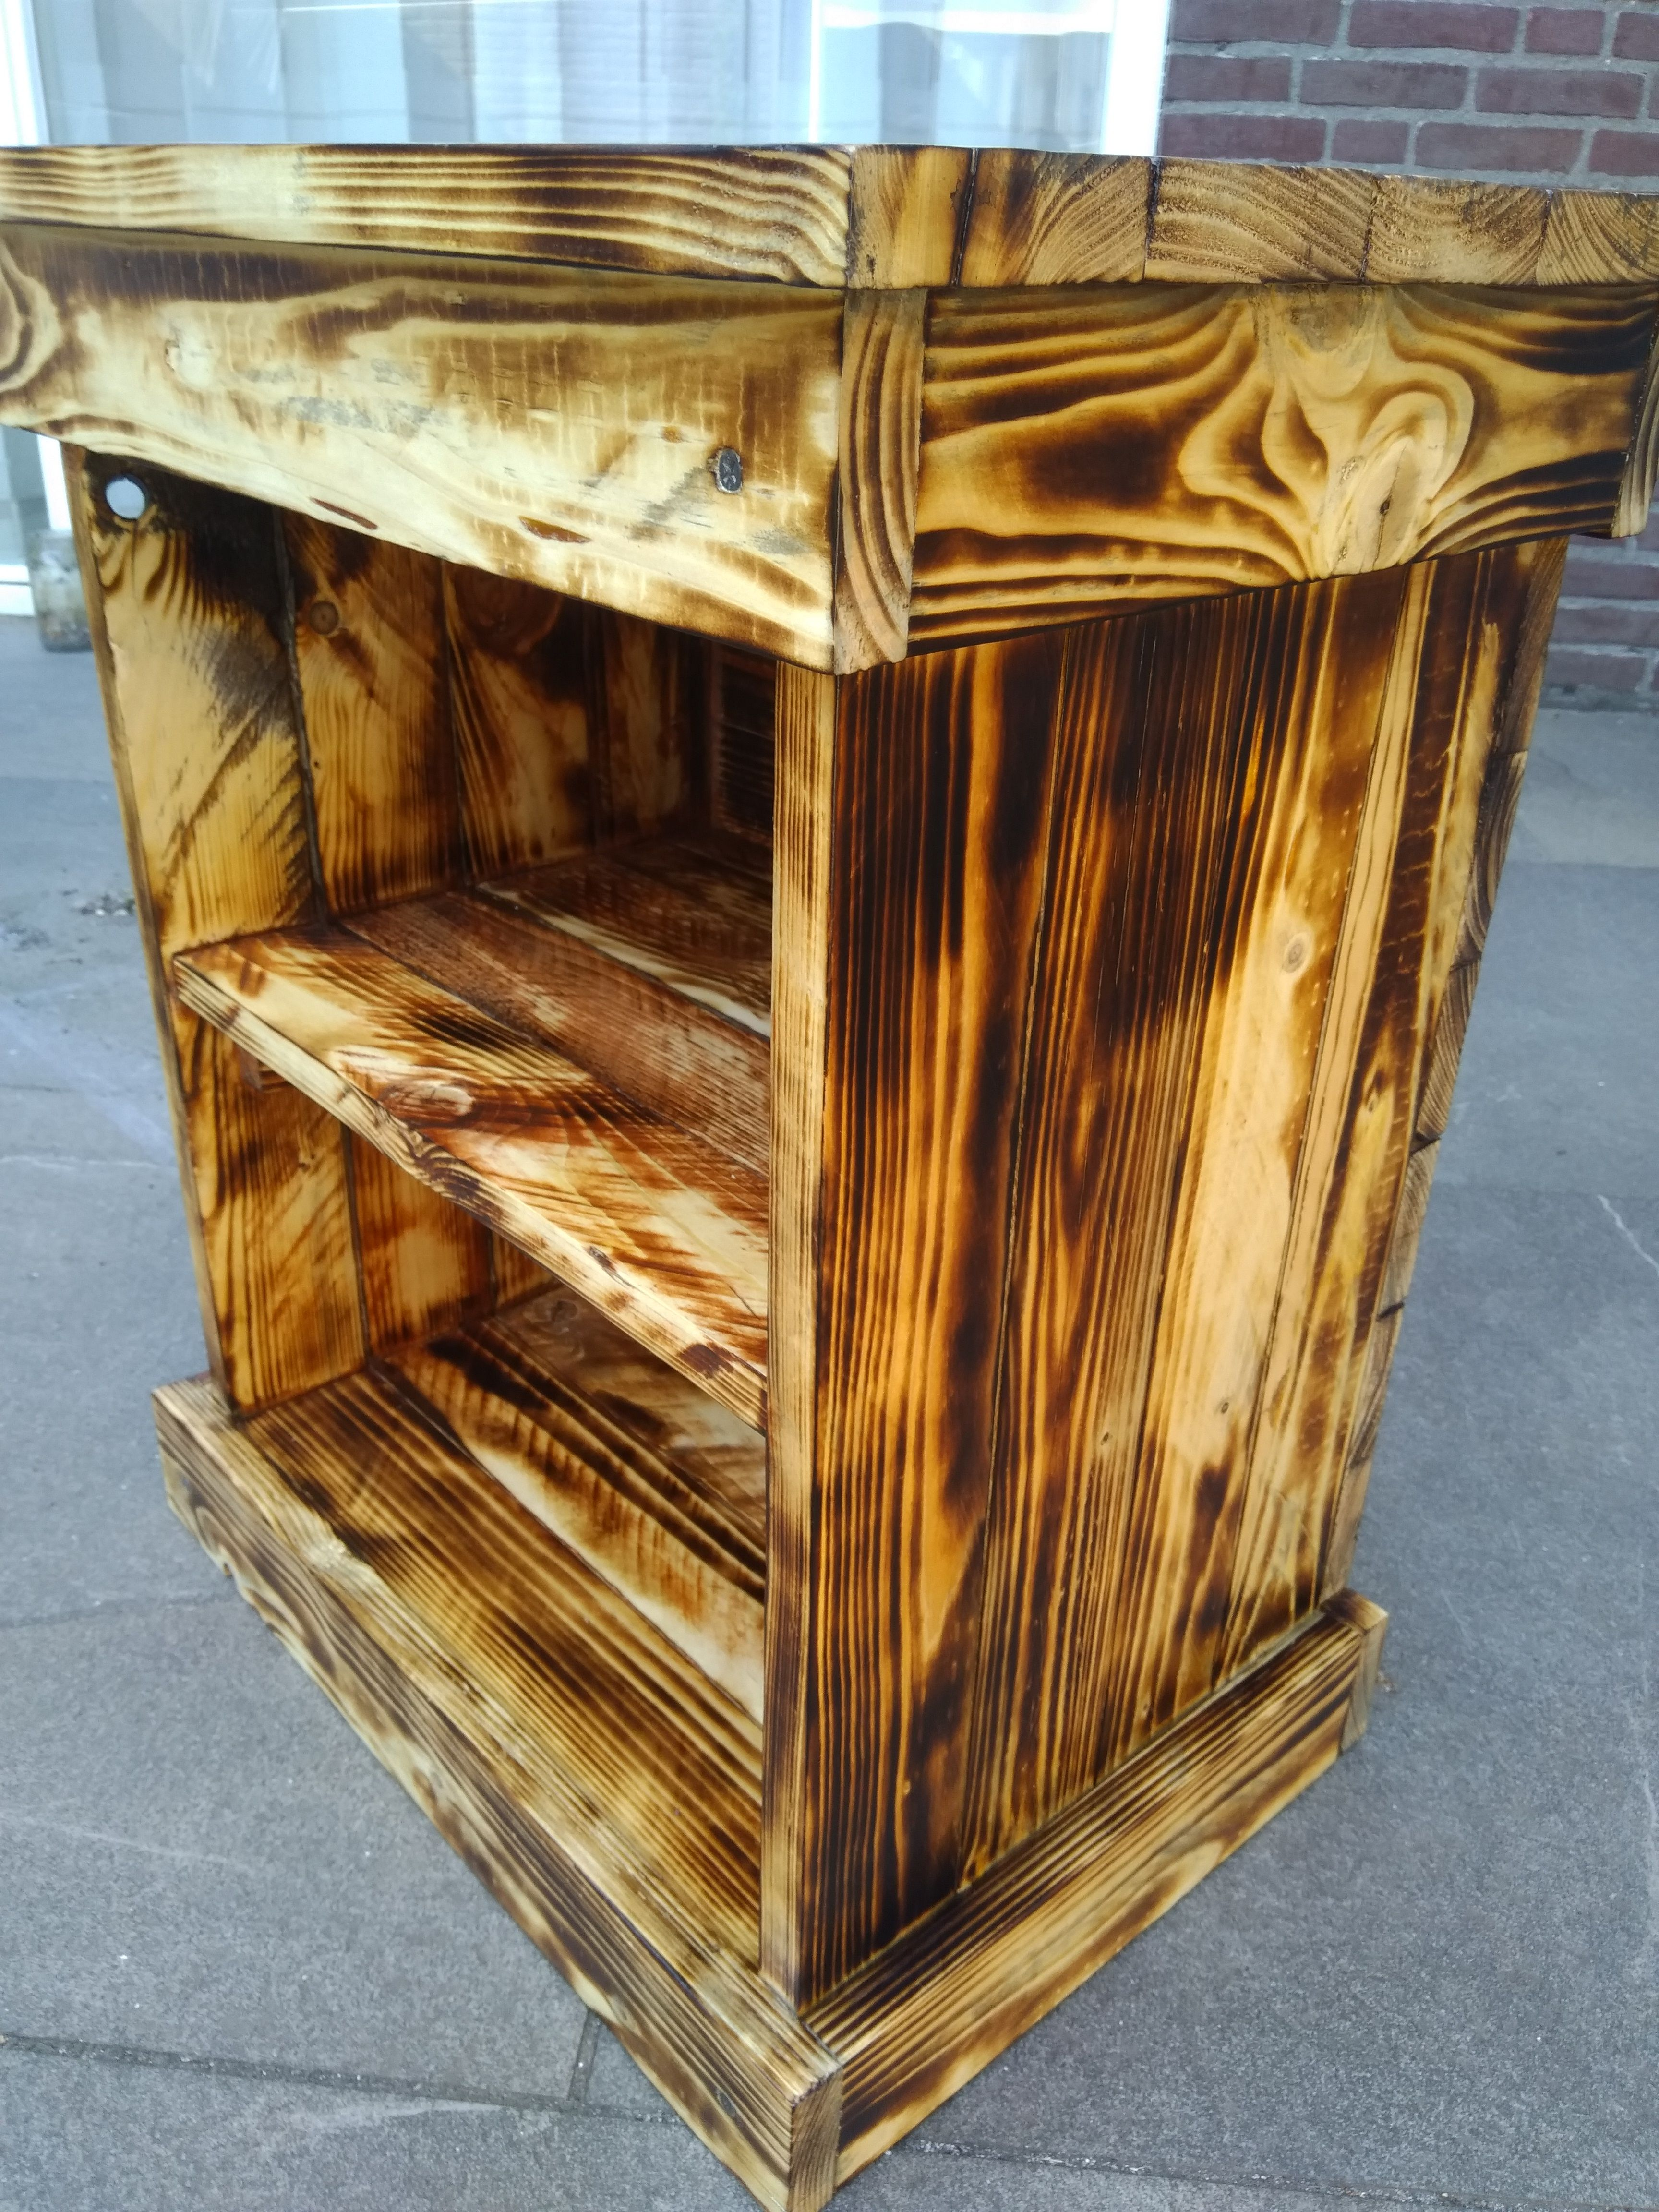 Rustic Wood Bedside Table: Rustic Pallet Wood Bedside Table, Solid Wooden Storage